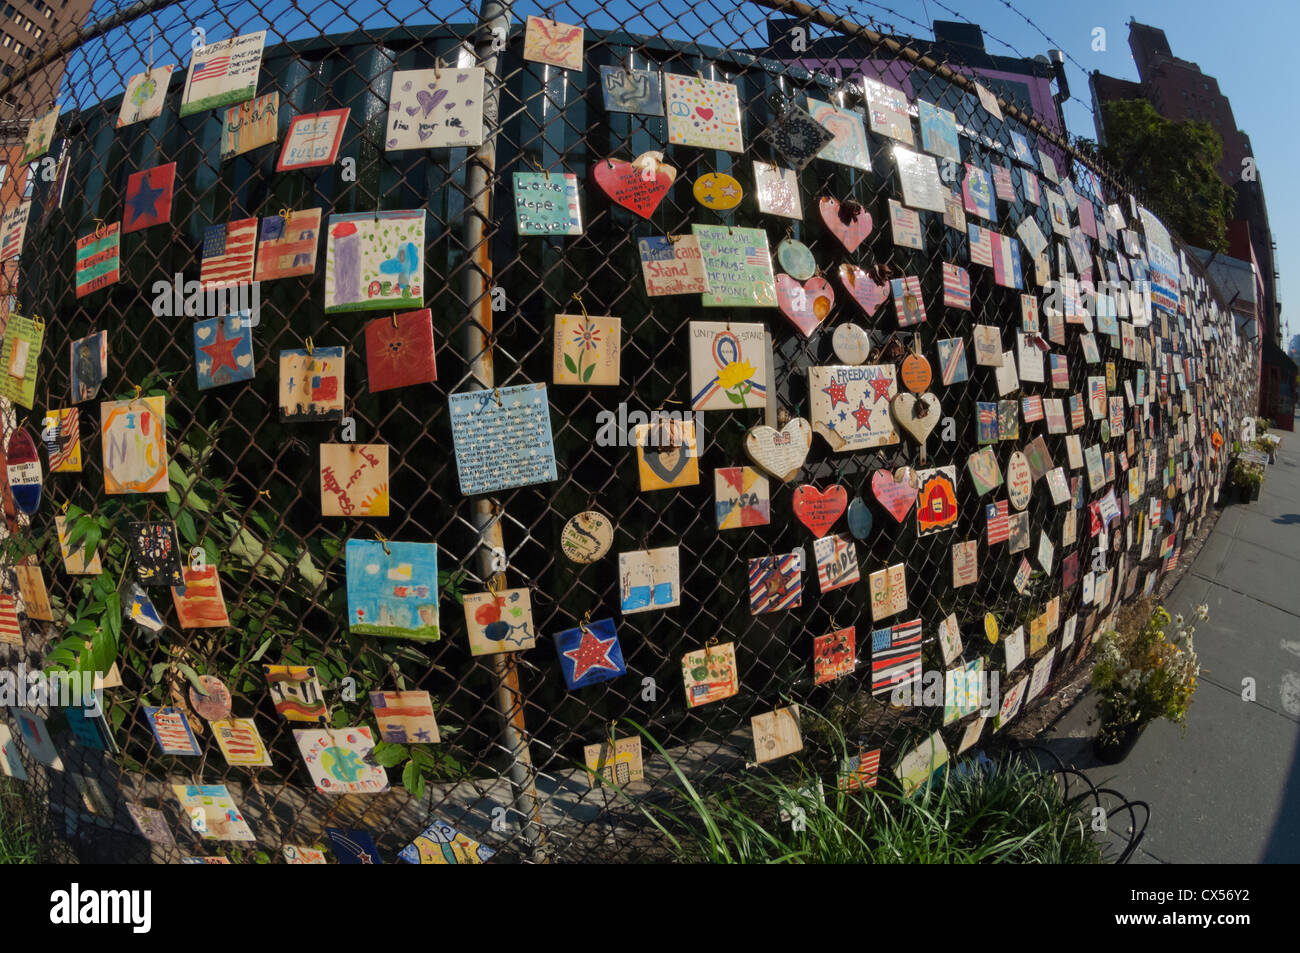 The tiles memorializing the World Trade Center victims in New York in Greenwich Village - Stock Image